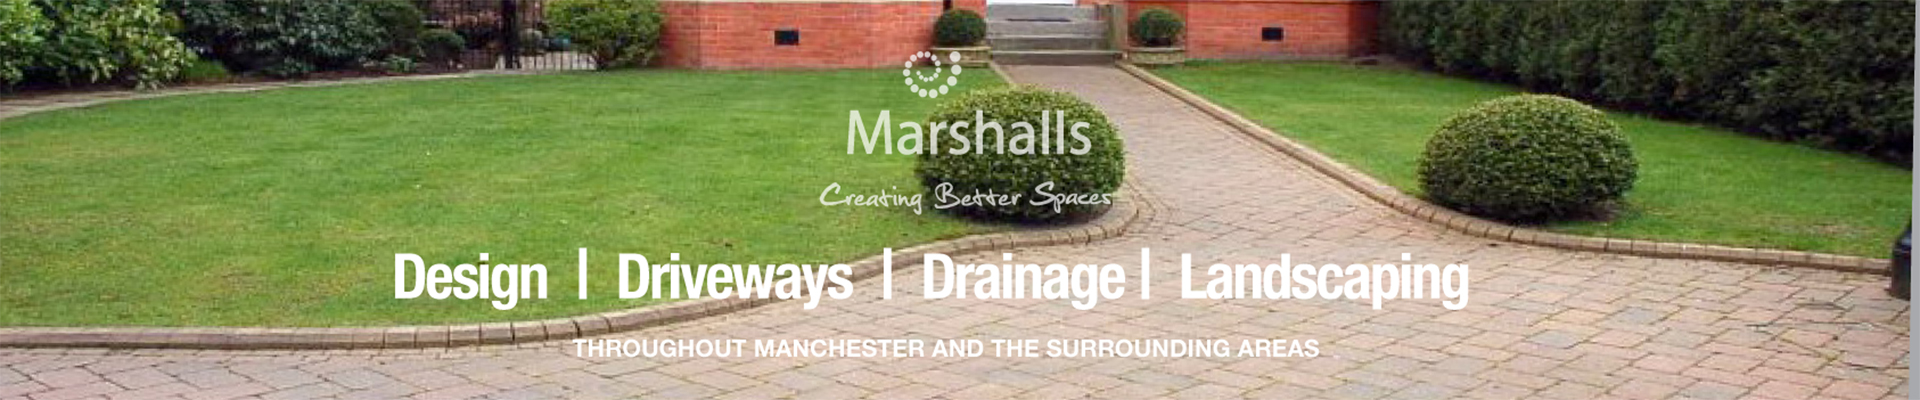 Driveways & Landscaping Manchester